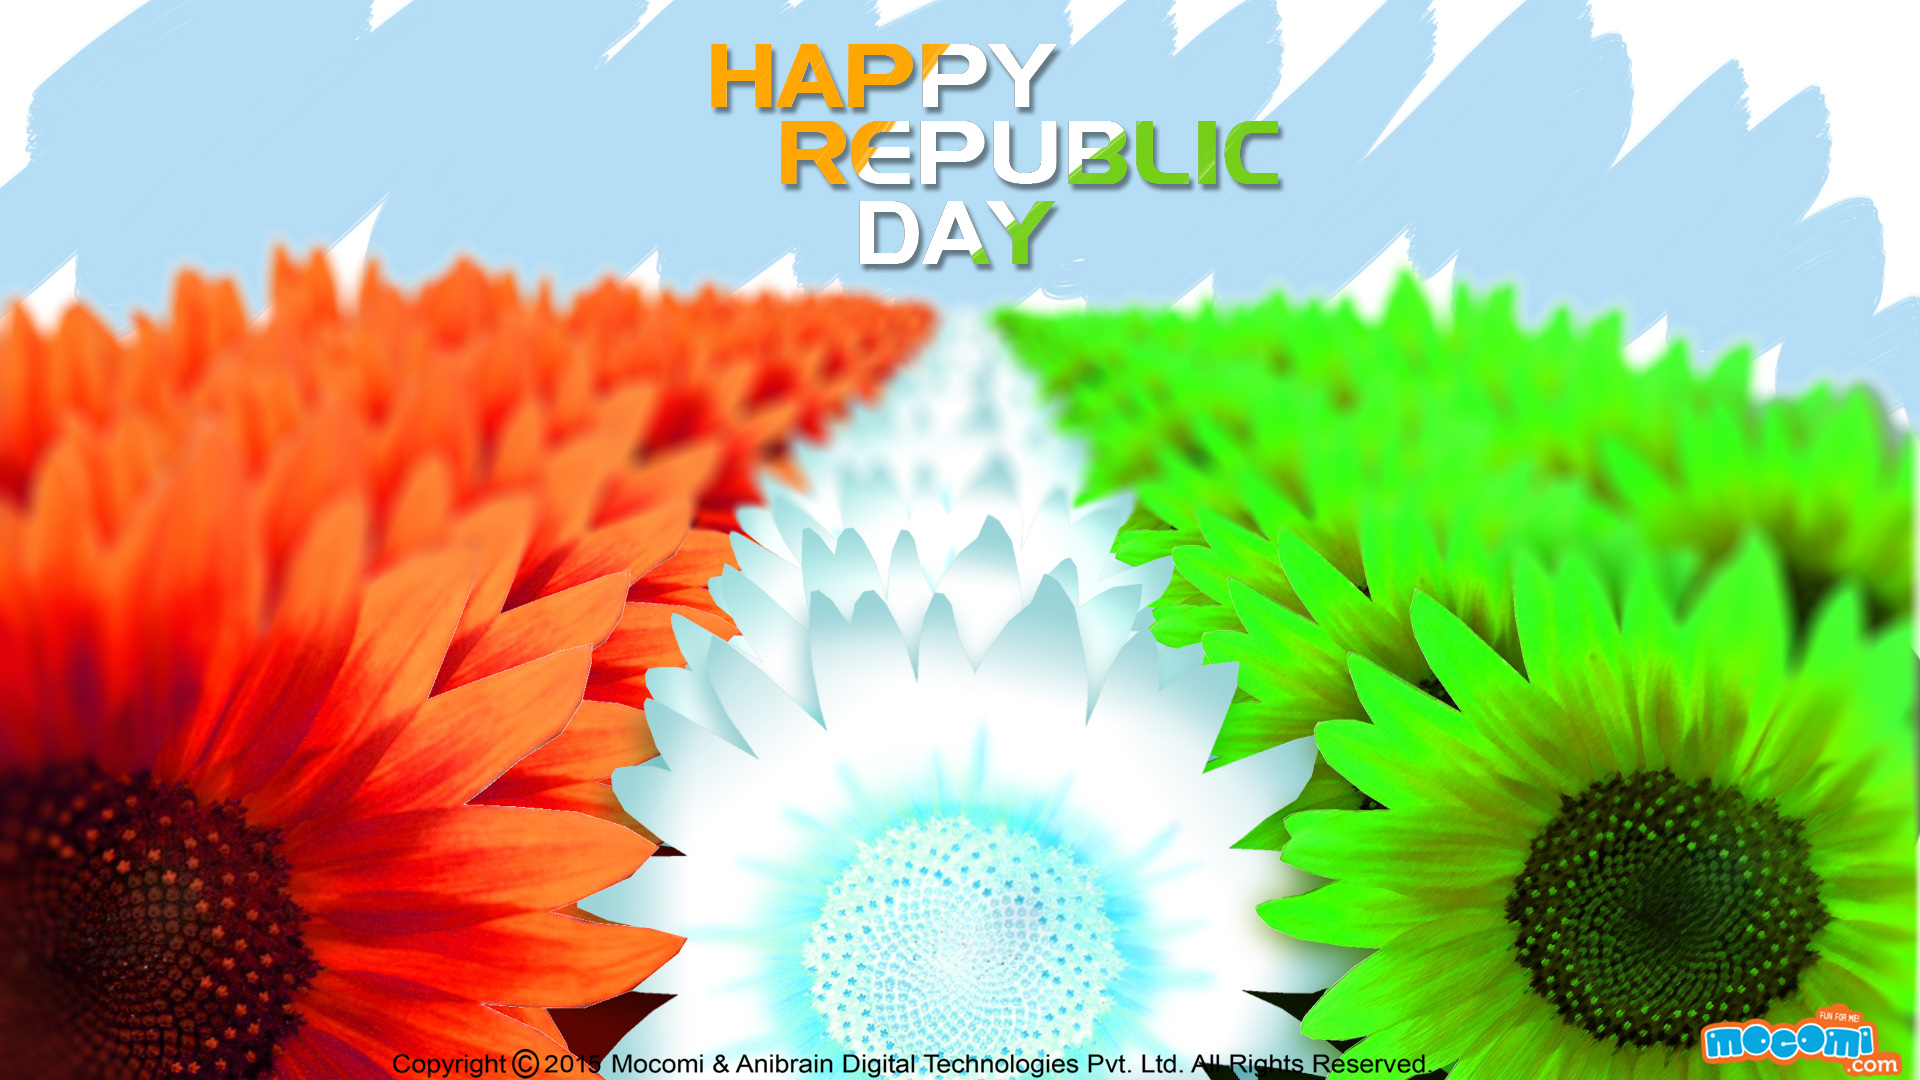 Happy Republic Day Wallpaper-2